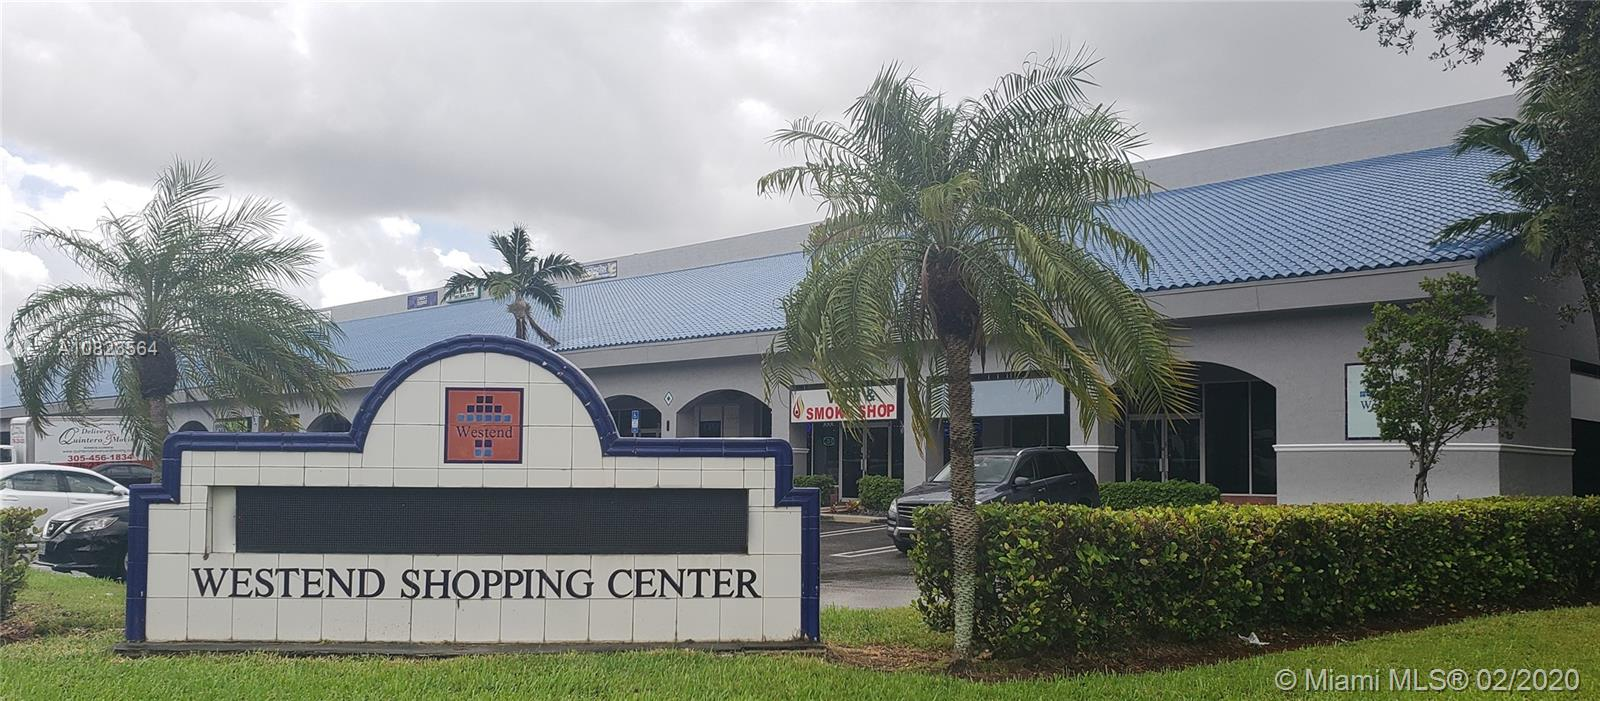 2600 NW 87th Ave # 25, Doral, Florida 33172, ,Commercial Sale,For Sale,2600 NW 87th Ave # 25,A10823564